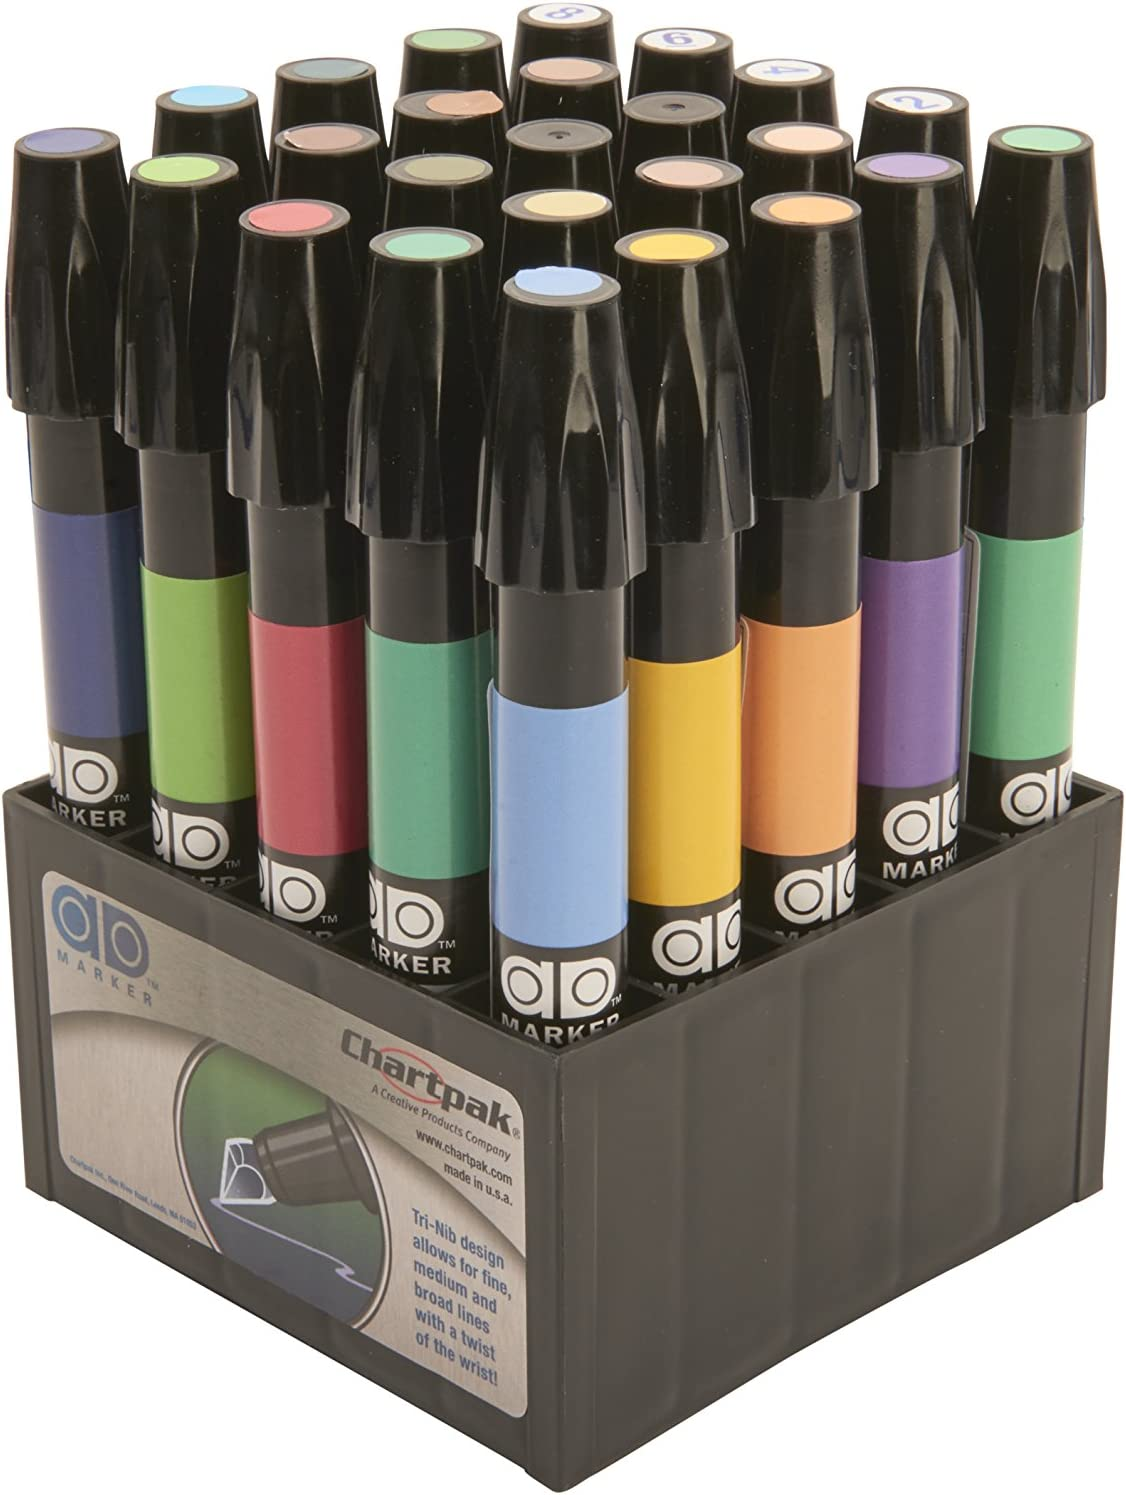 The Original Chartpak AD Markers, Tri-Nib, 25 Assorted Art Director Colors in Tabletop Cube, 1 Each (K)